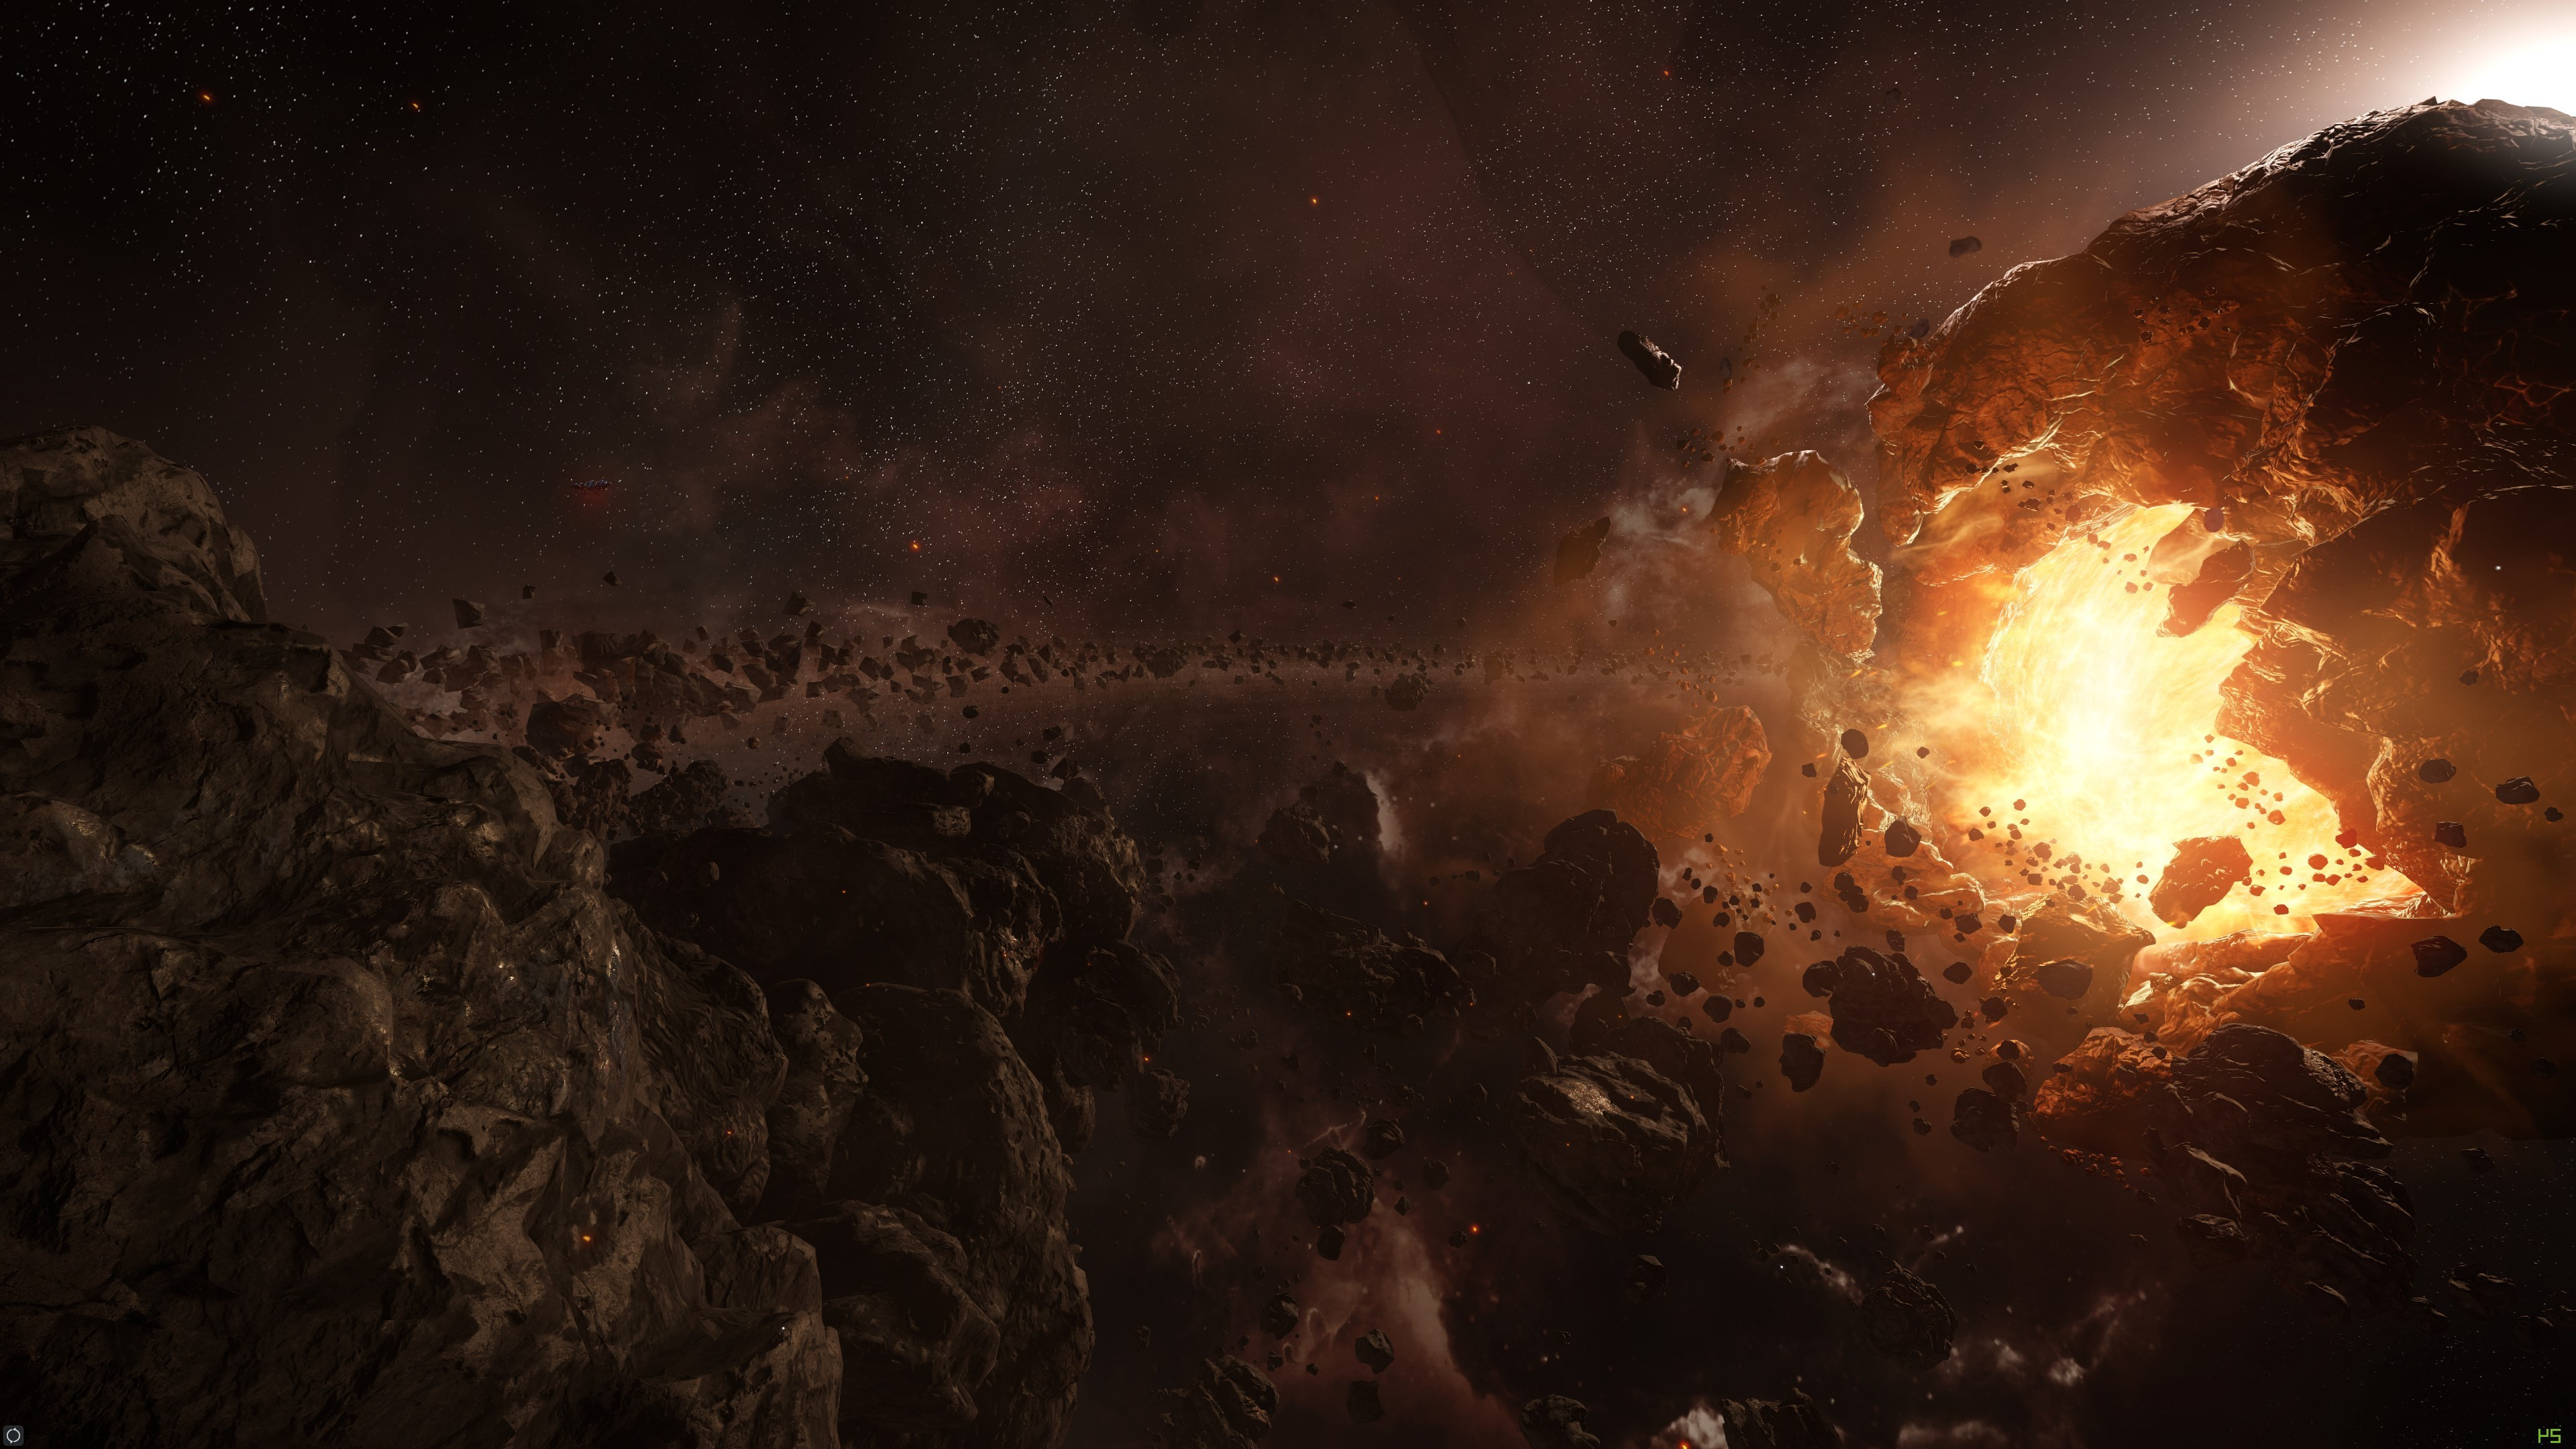 3d Asteroid Wallpaper Space Asteroid Star Citizen Wallpapers Hd Desktop And